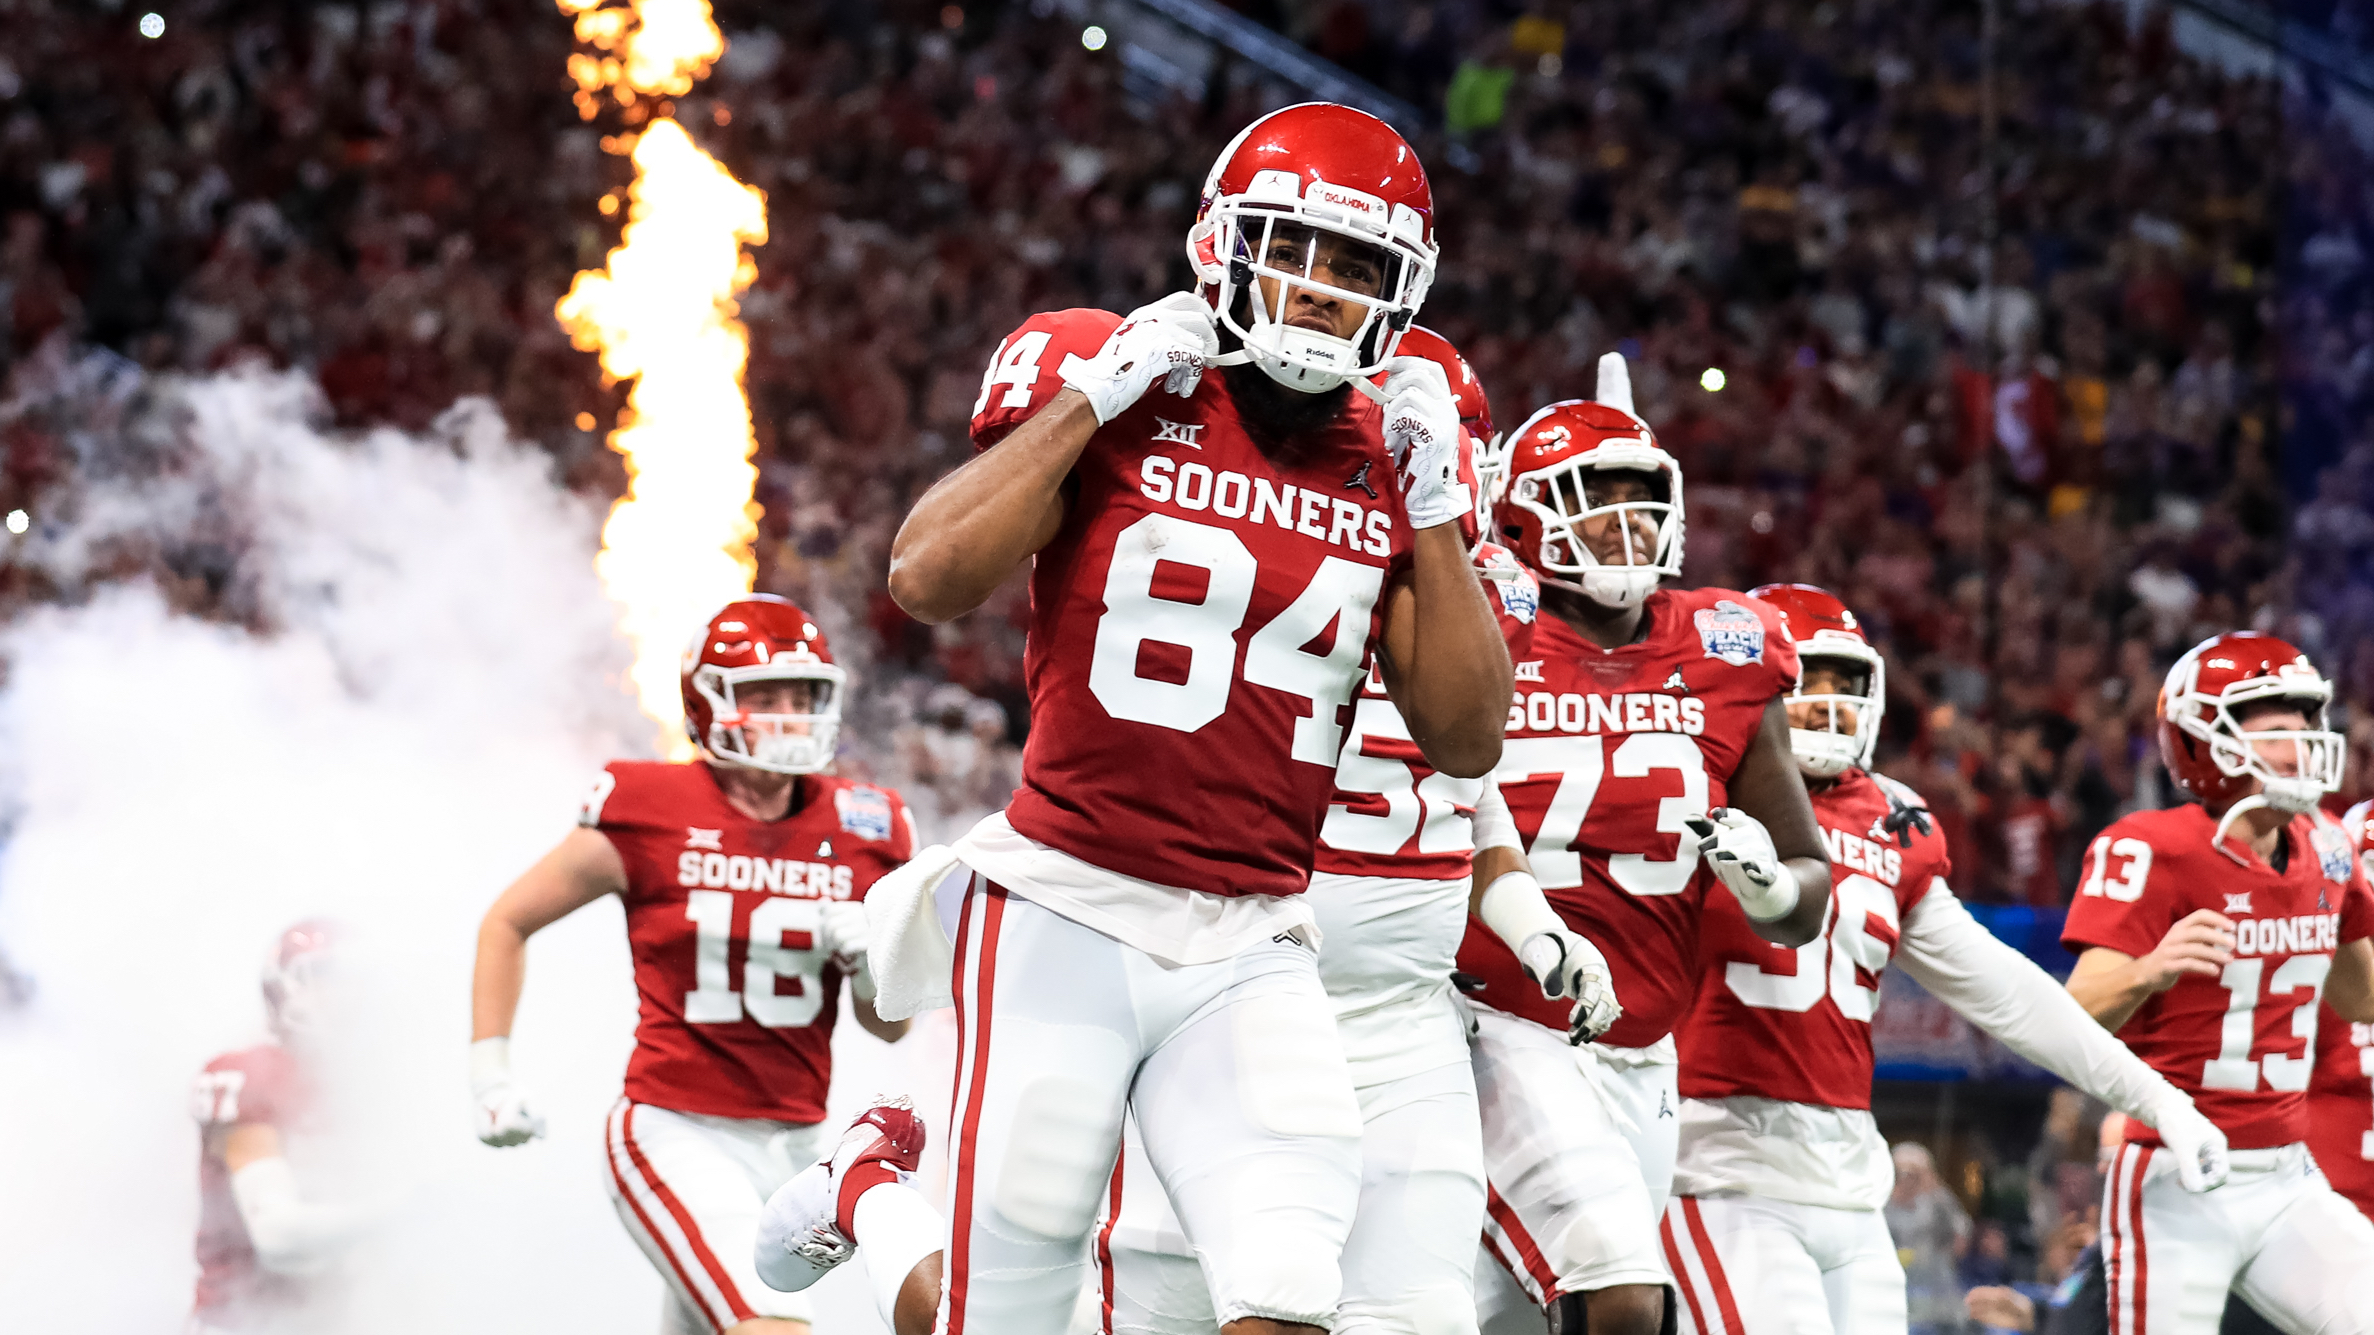 Oklahoma vs. Oklahoma State Promo: Bet $20, Win $250 if the Sooners Cover! article feature image